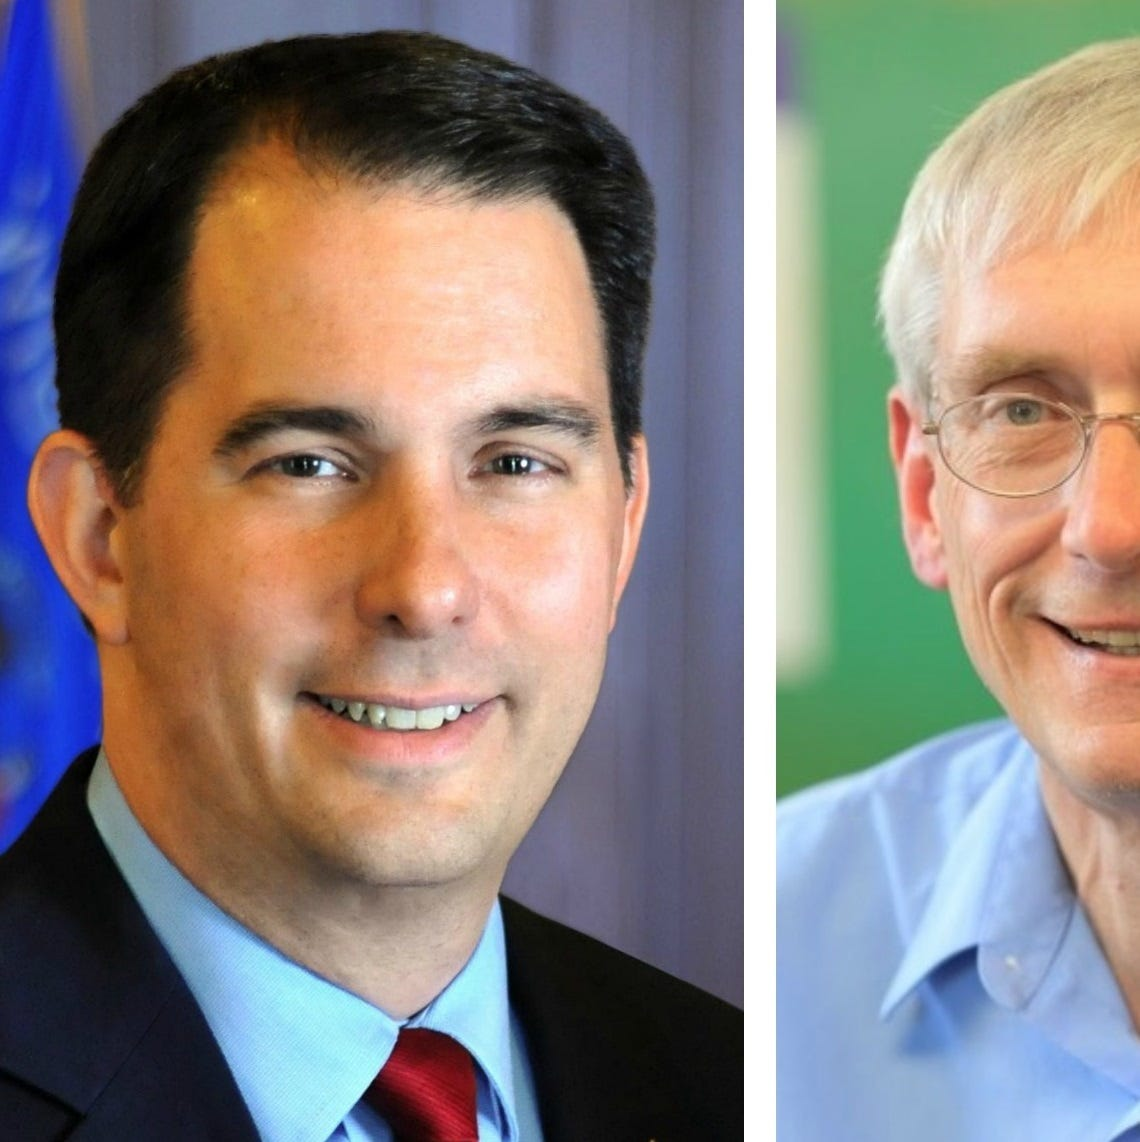 Bice: Scott Walker's allies lob new accusation against Tony Evers over teacher misconduct